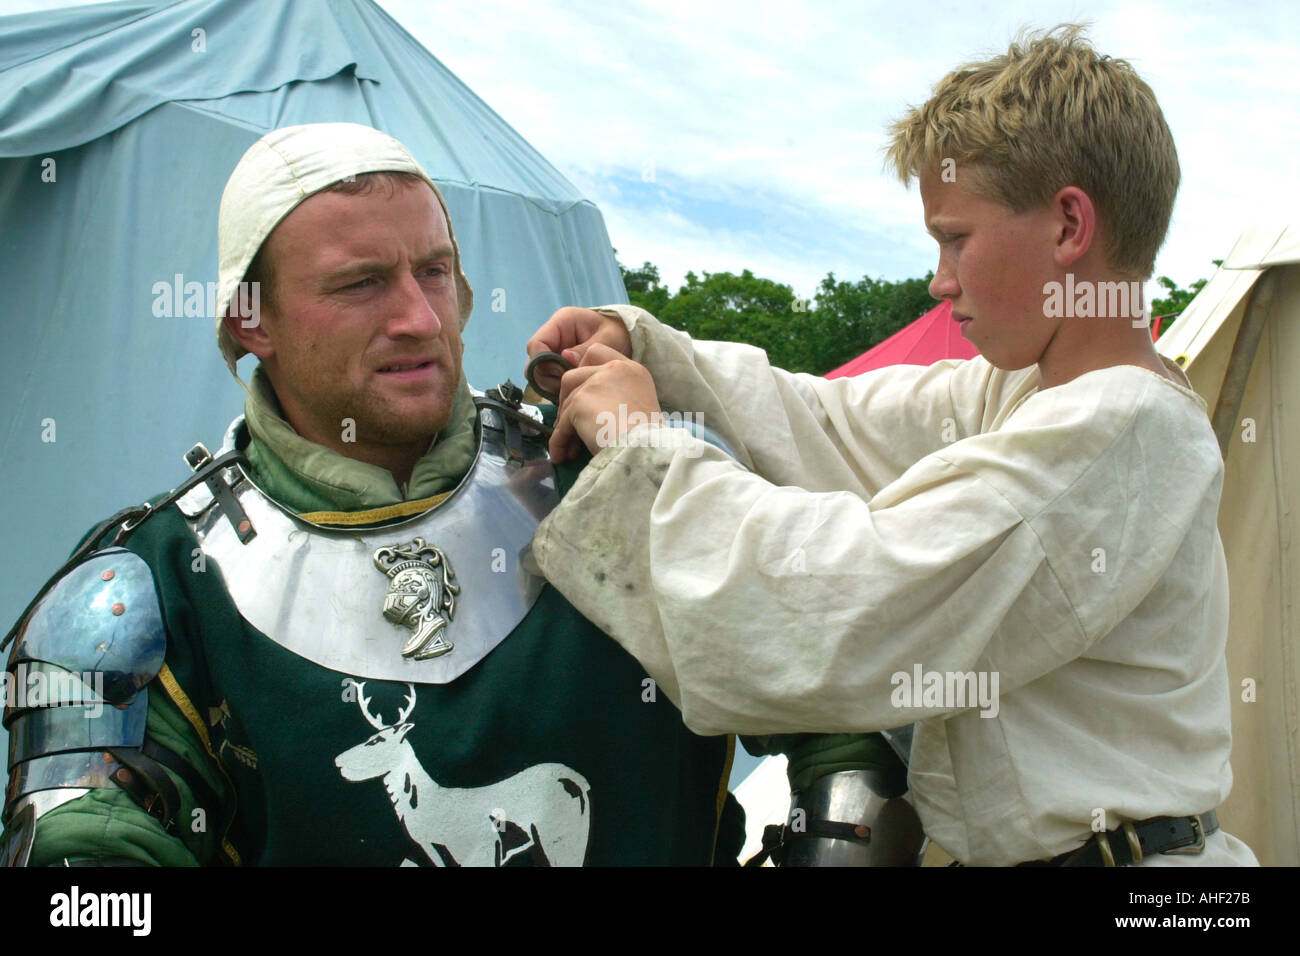 Reenactment of a medieval battle at Cosmeston Medieval Village South Wales uk - Stock Image